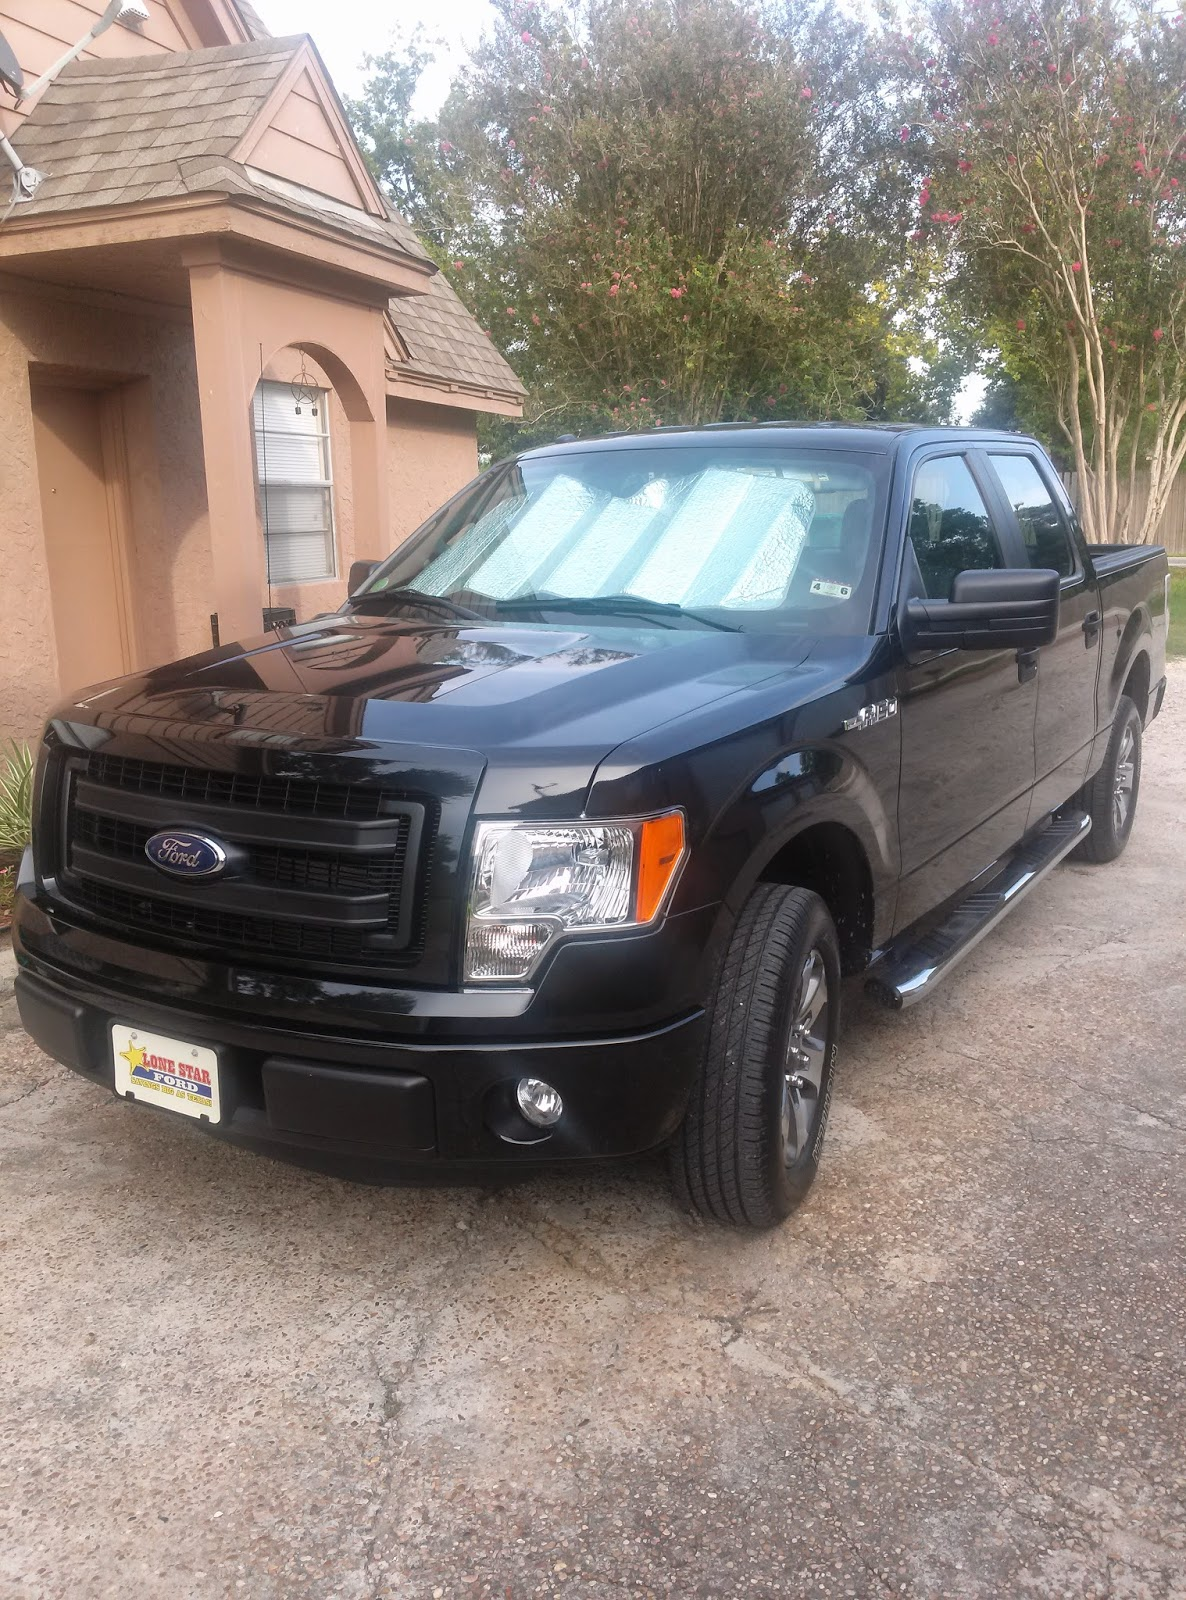 Dales bits and pieces of the rainbow 2014 ford f 150 stx crewcab review